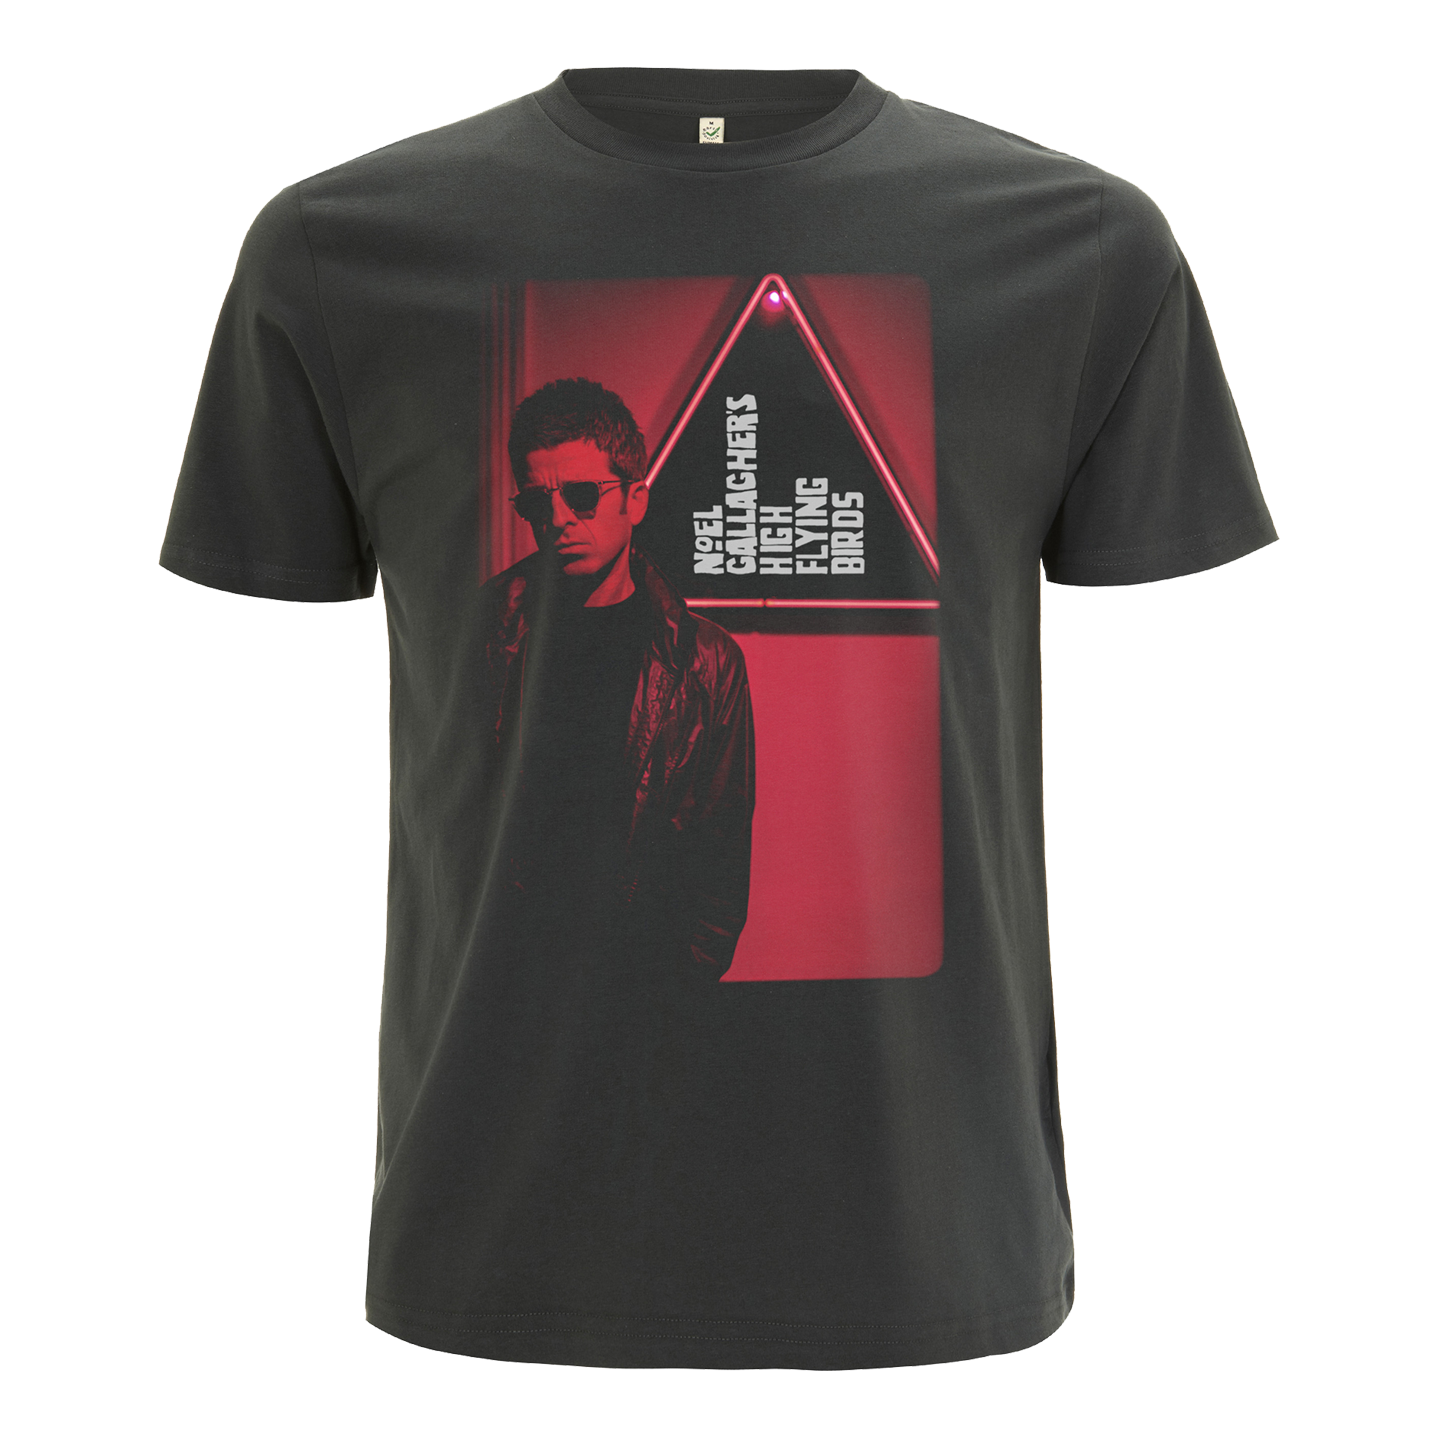 Buy Online Noel Gallagher's High Flying Birds Official Store - Red Triangle Tour T-Shirt